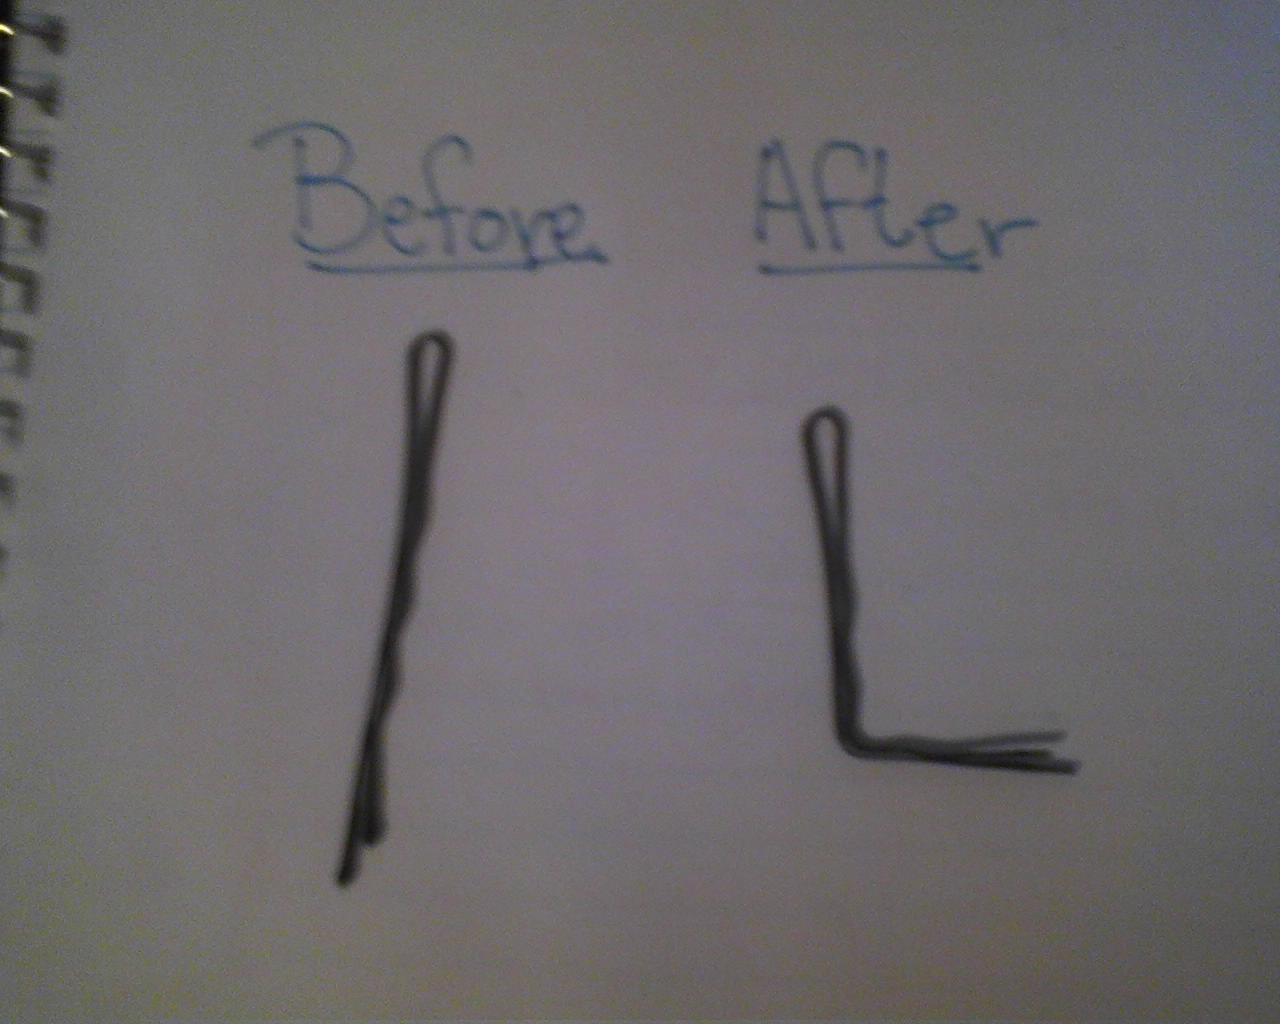 the before and after picture for creating a lock picking tool unfolded bobby pin how to pick with bobby pin b23 pin